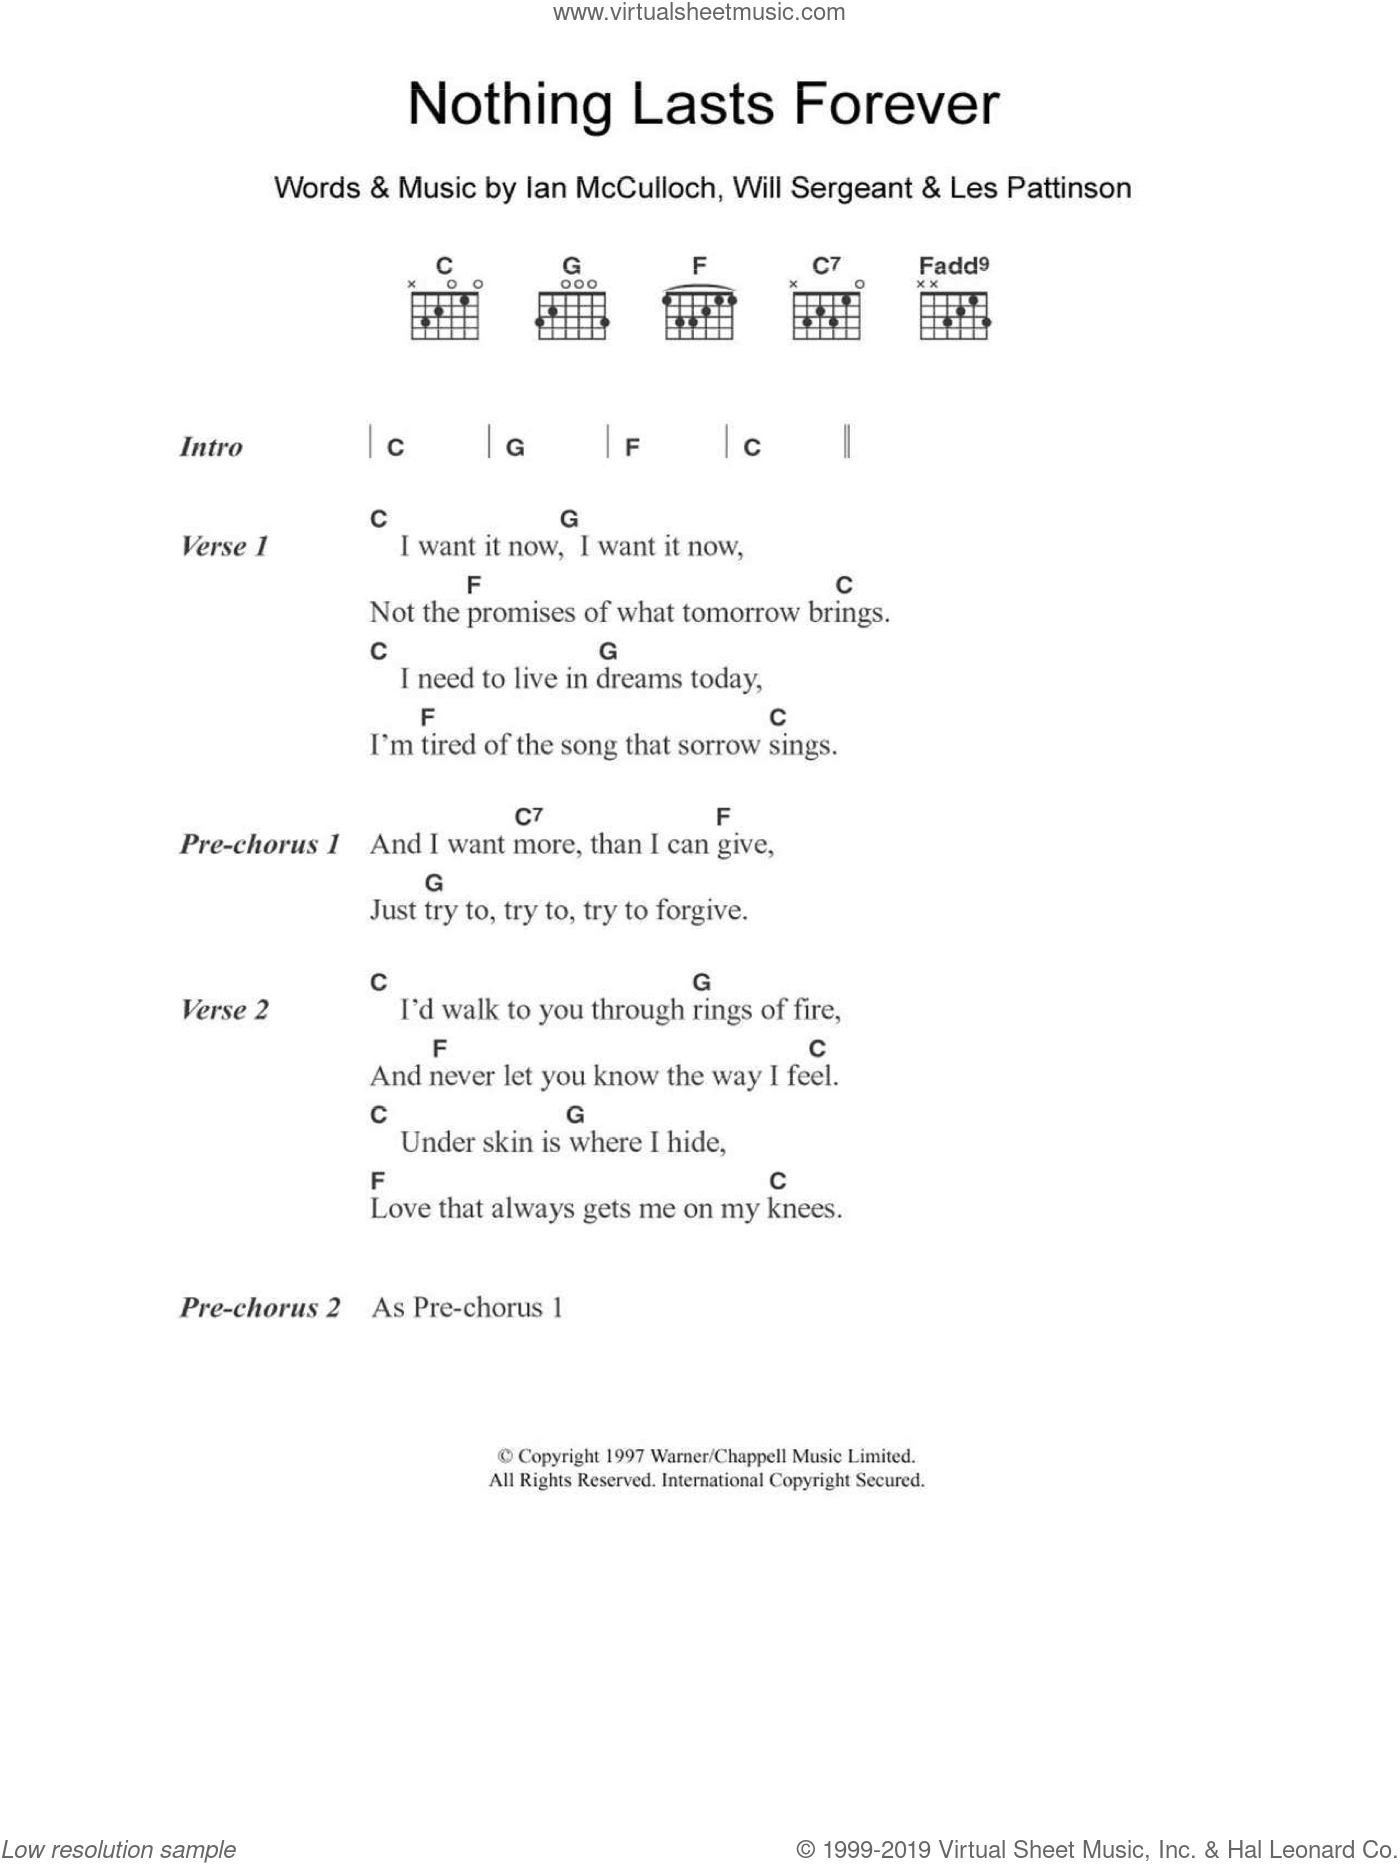 Nothing Lasts Forever sheet music for guitar (chords) by Will Sergeant